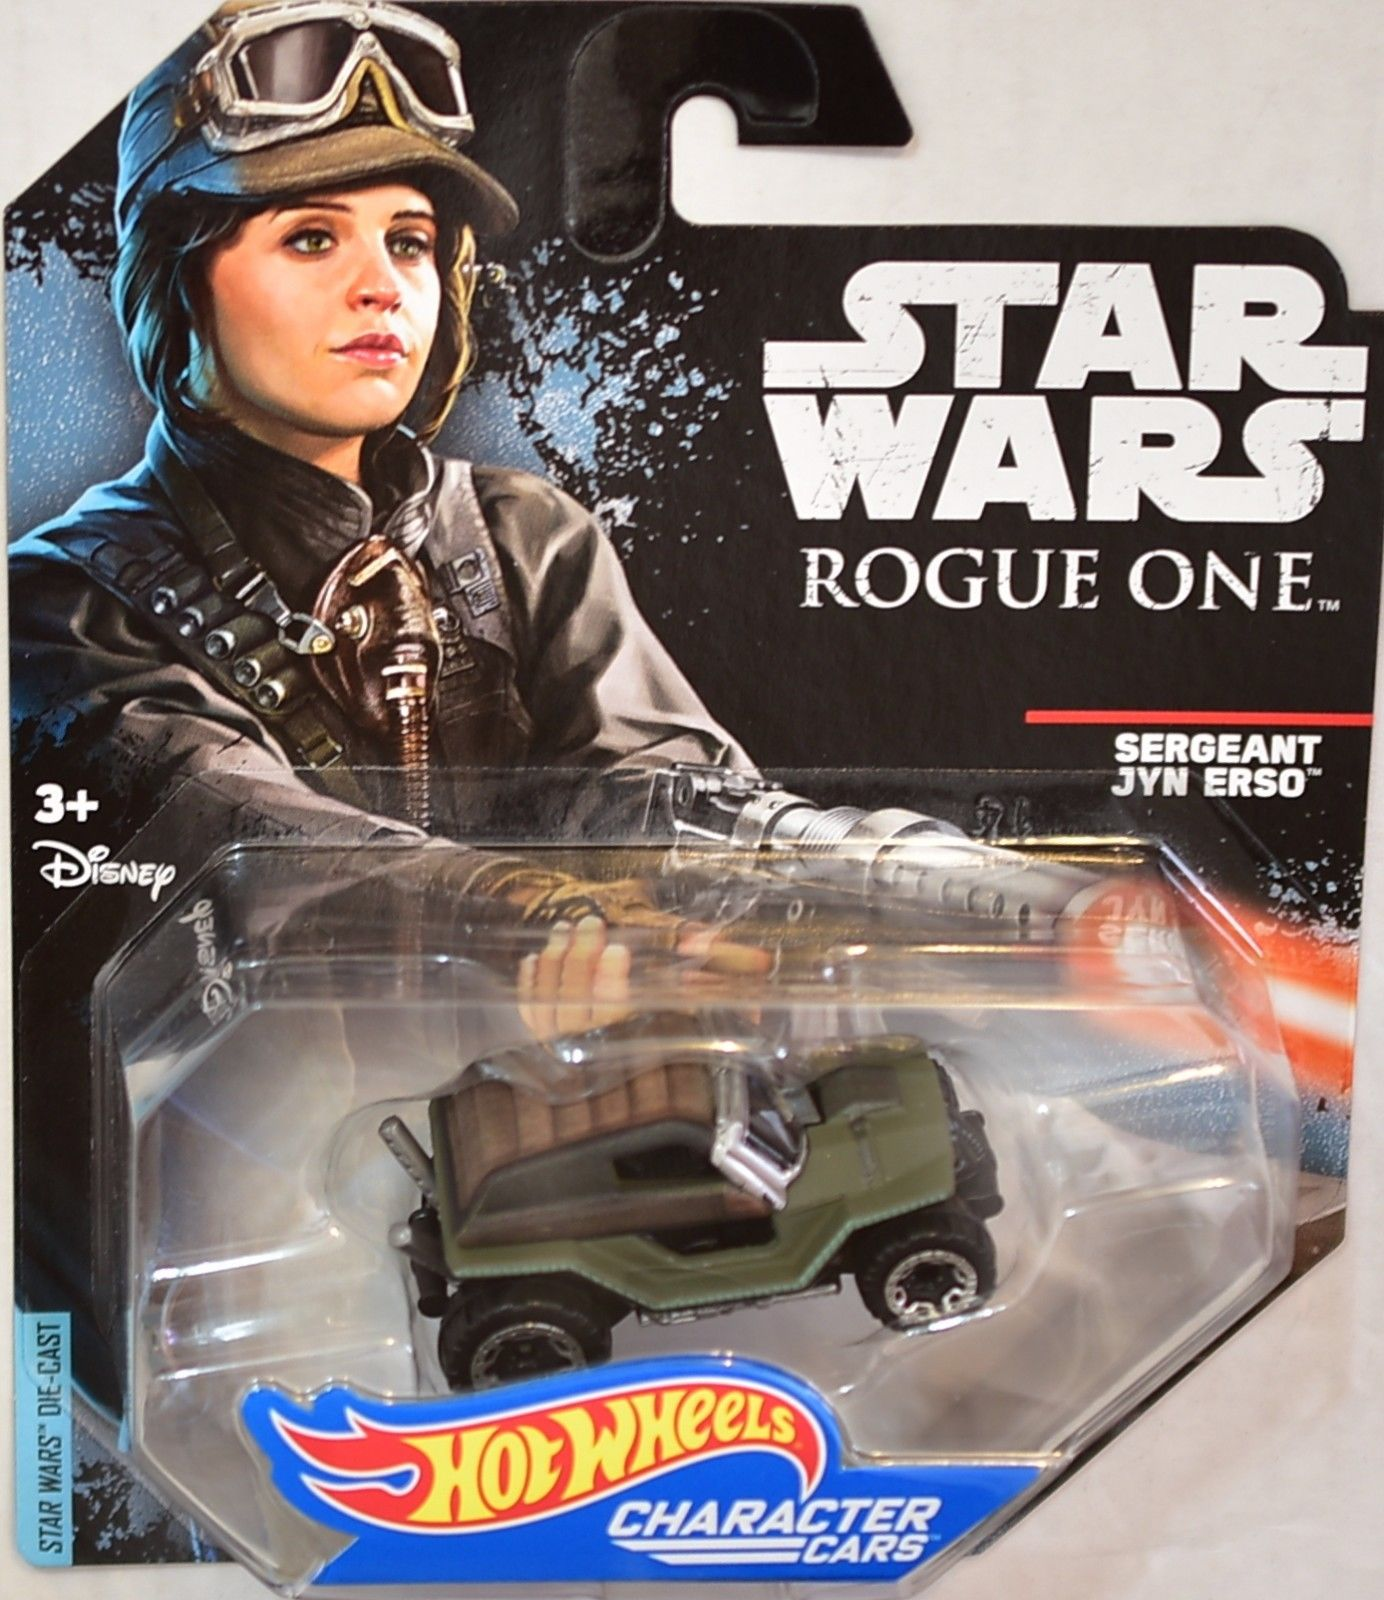 STAR WARS 2014 HOT WHEELS - ROGUE ONE SERGEANT JYN ERSO CHARACTER CARS